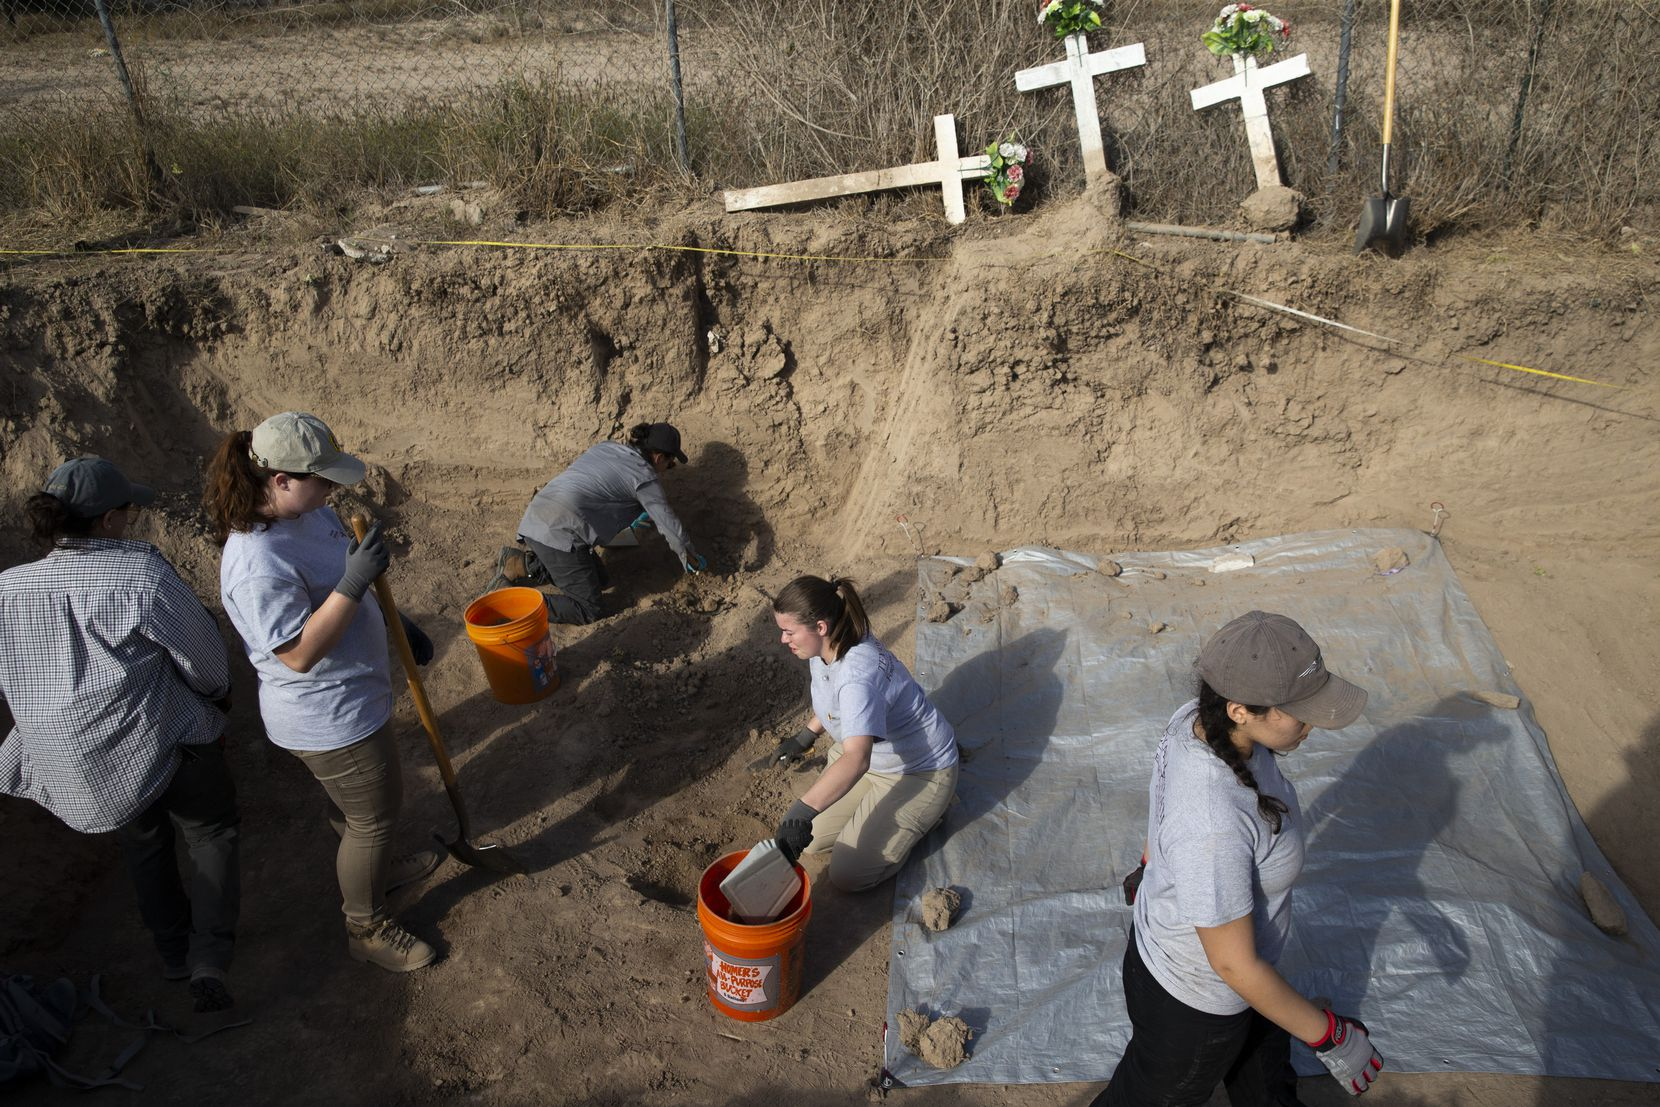 Anthropology students from Texas State University help to exhume the unidentified belongings and bodies of migrants at a cemetery in La Grulla.